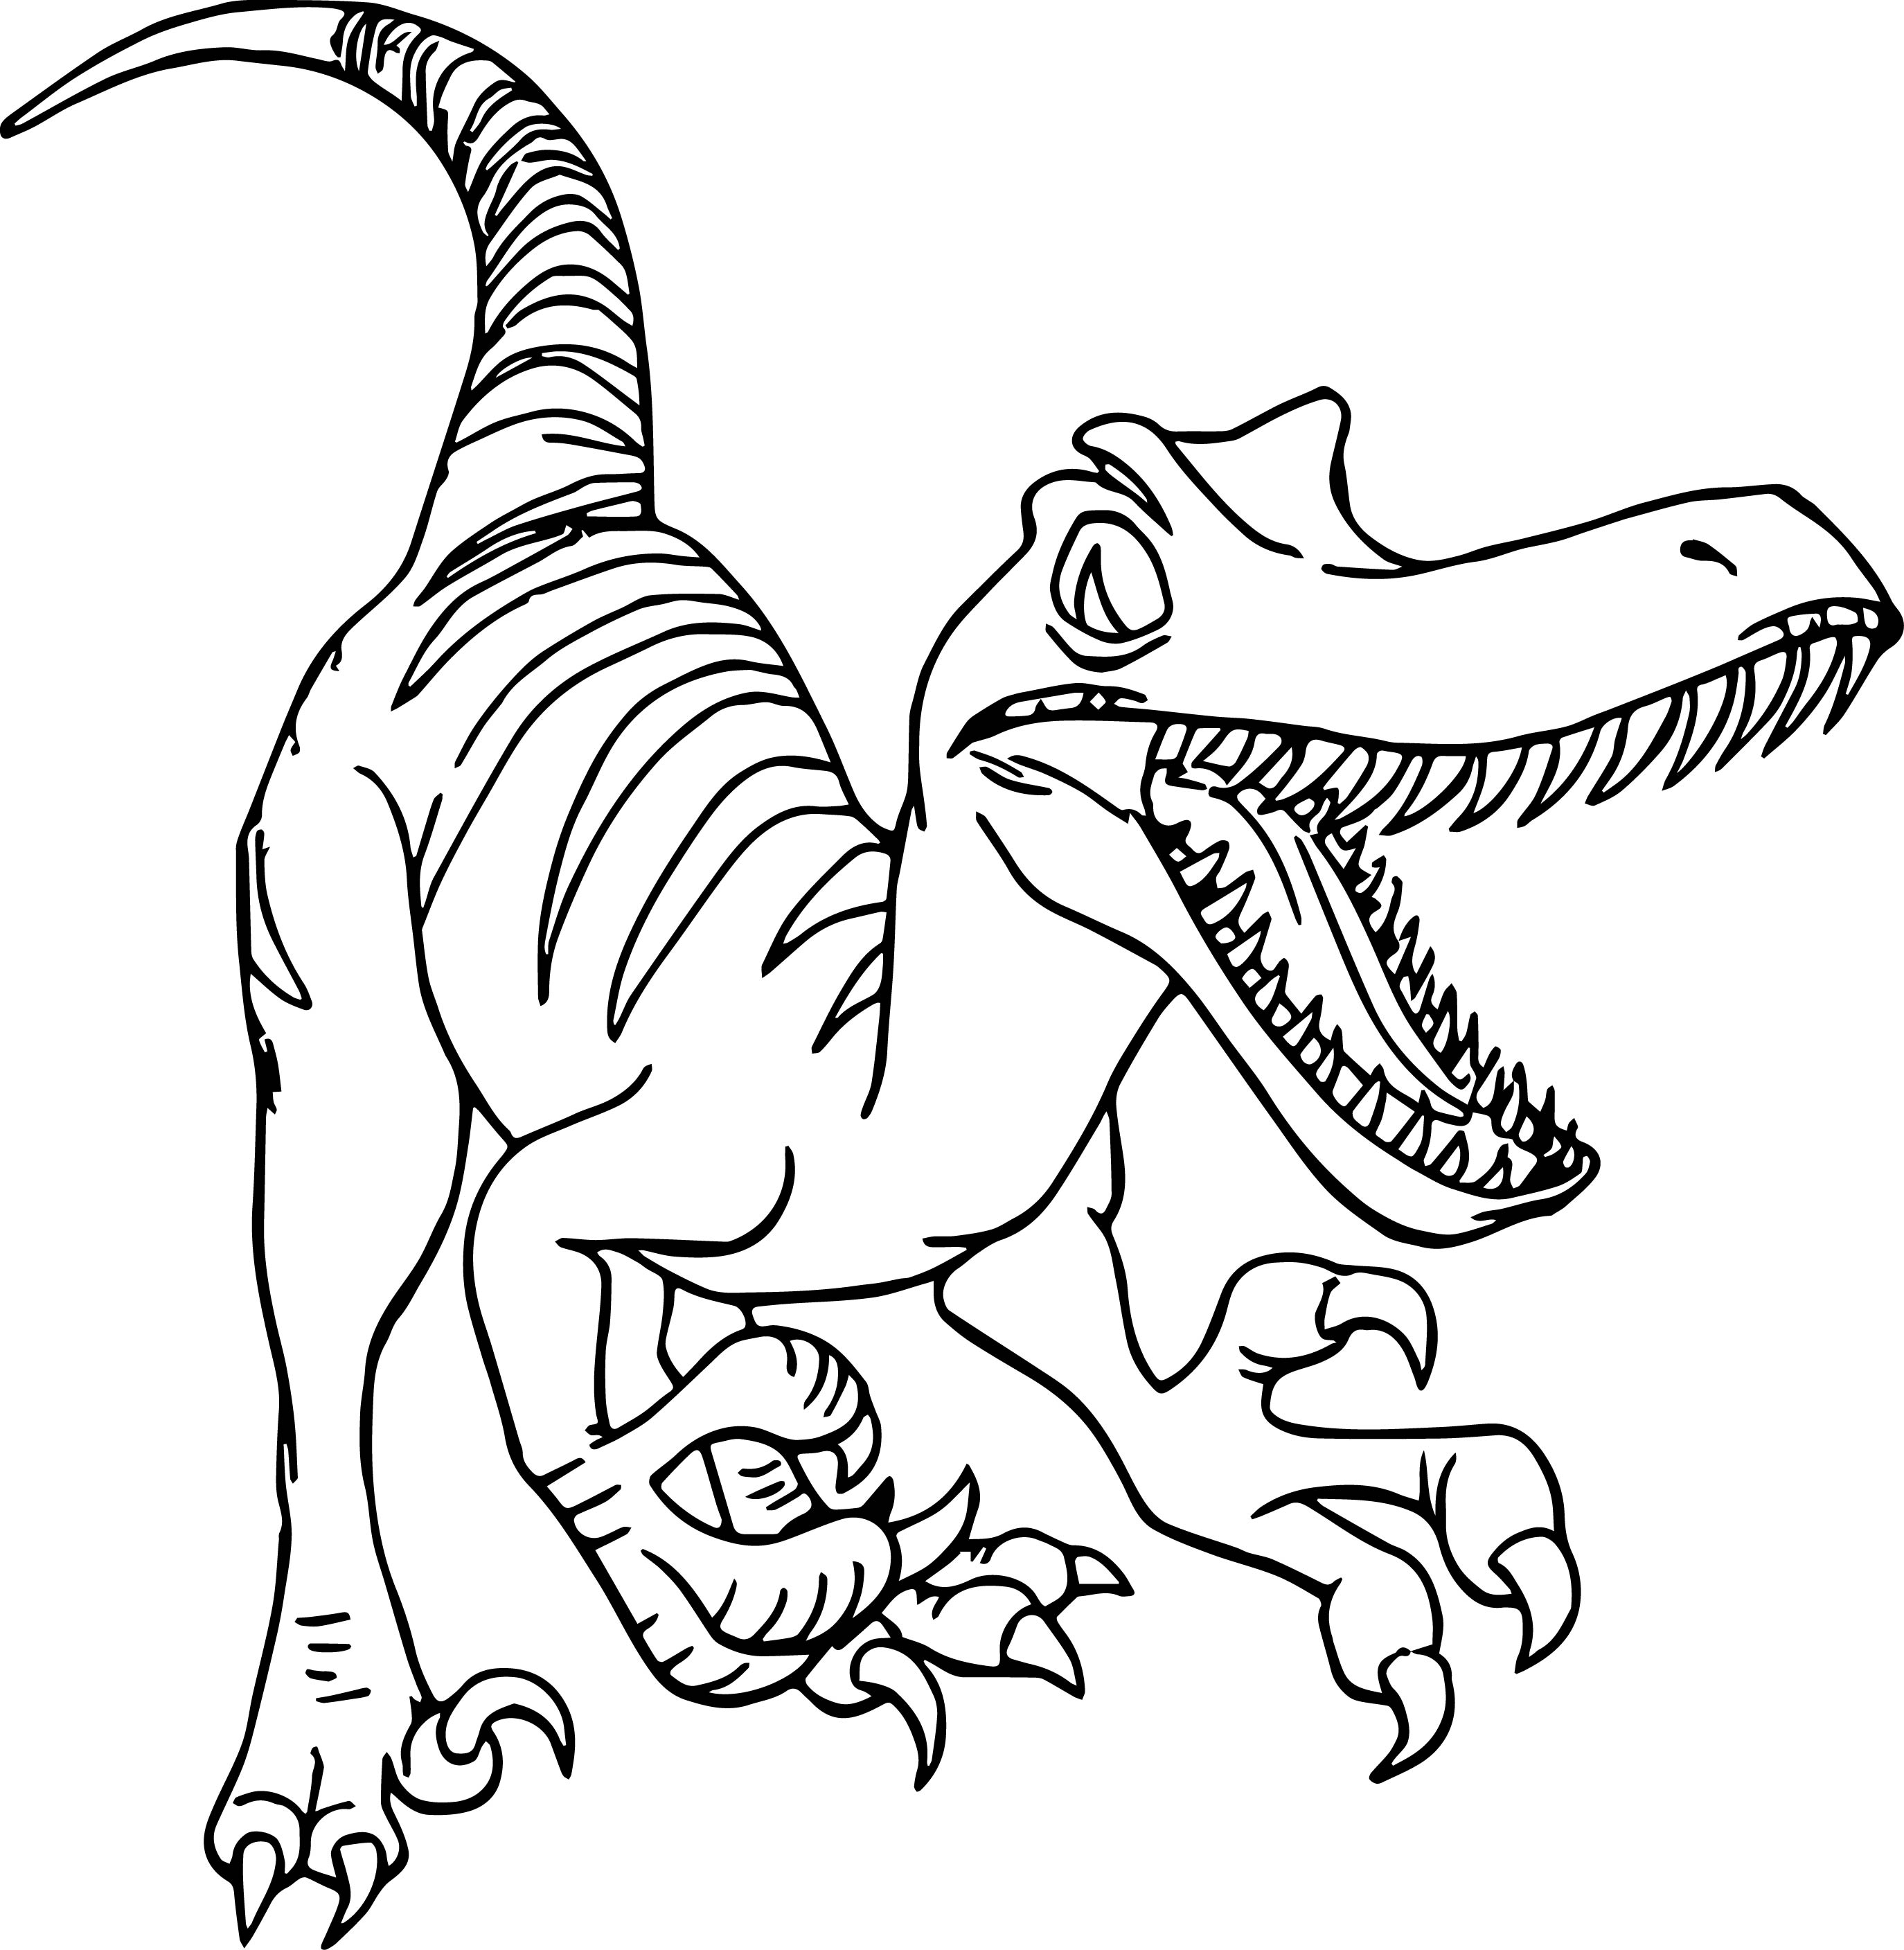 raptor coloring pages - raptor disney dinosaur coloring page